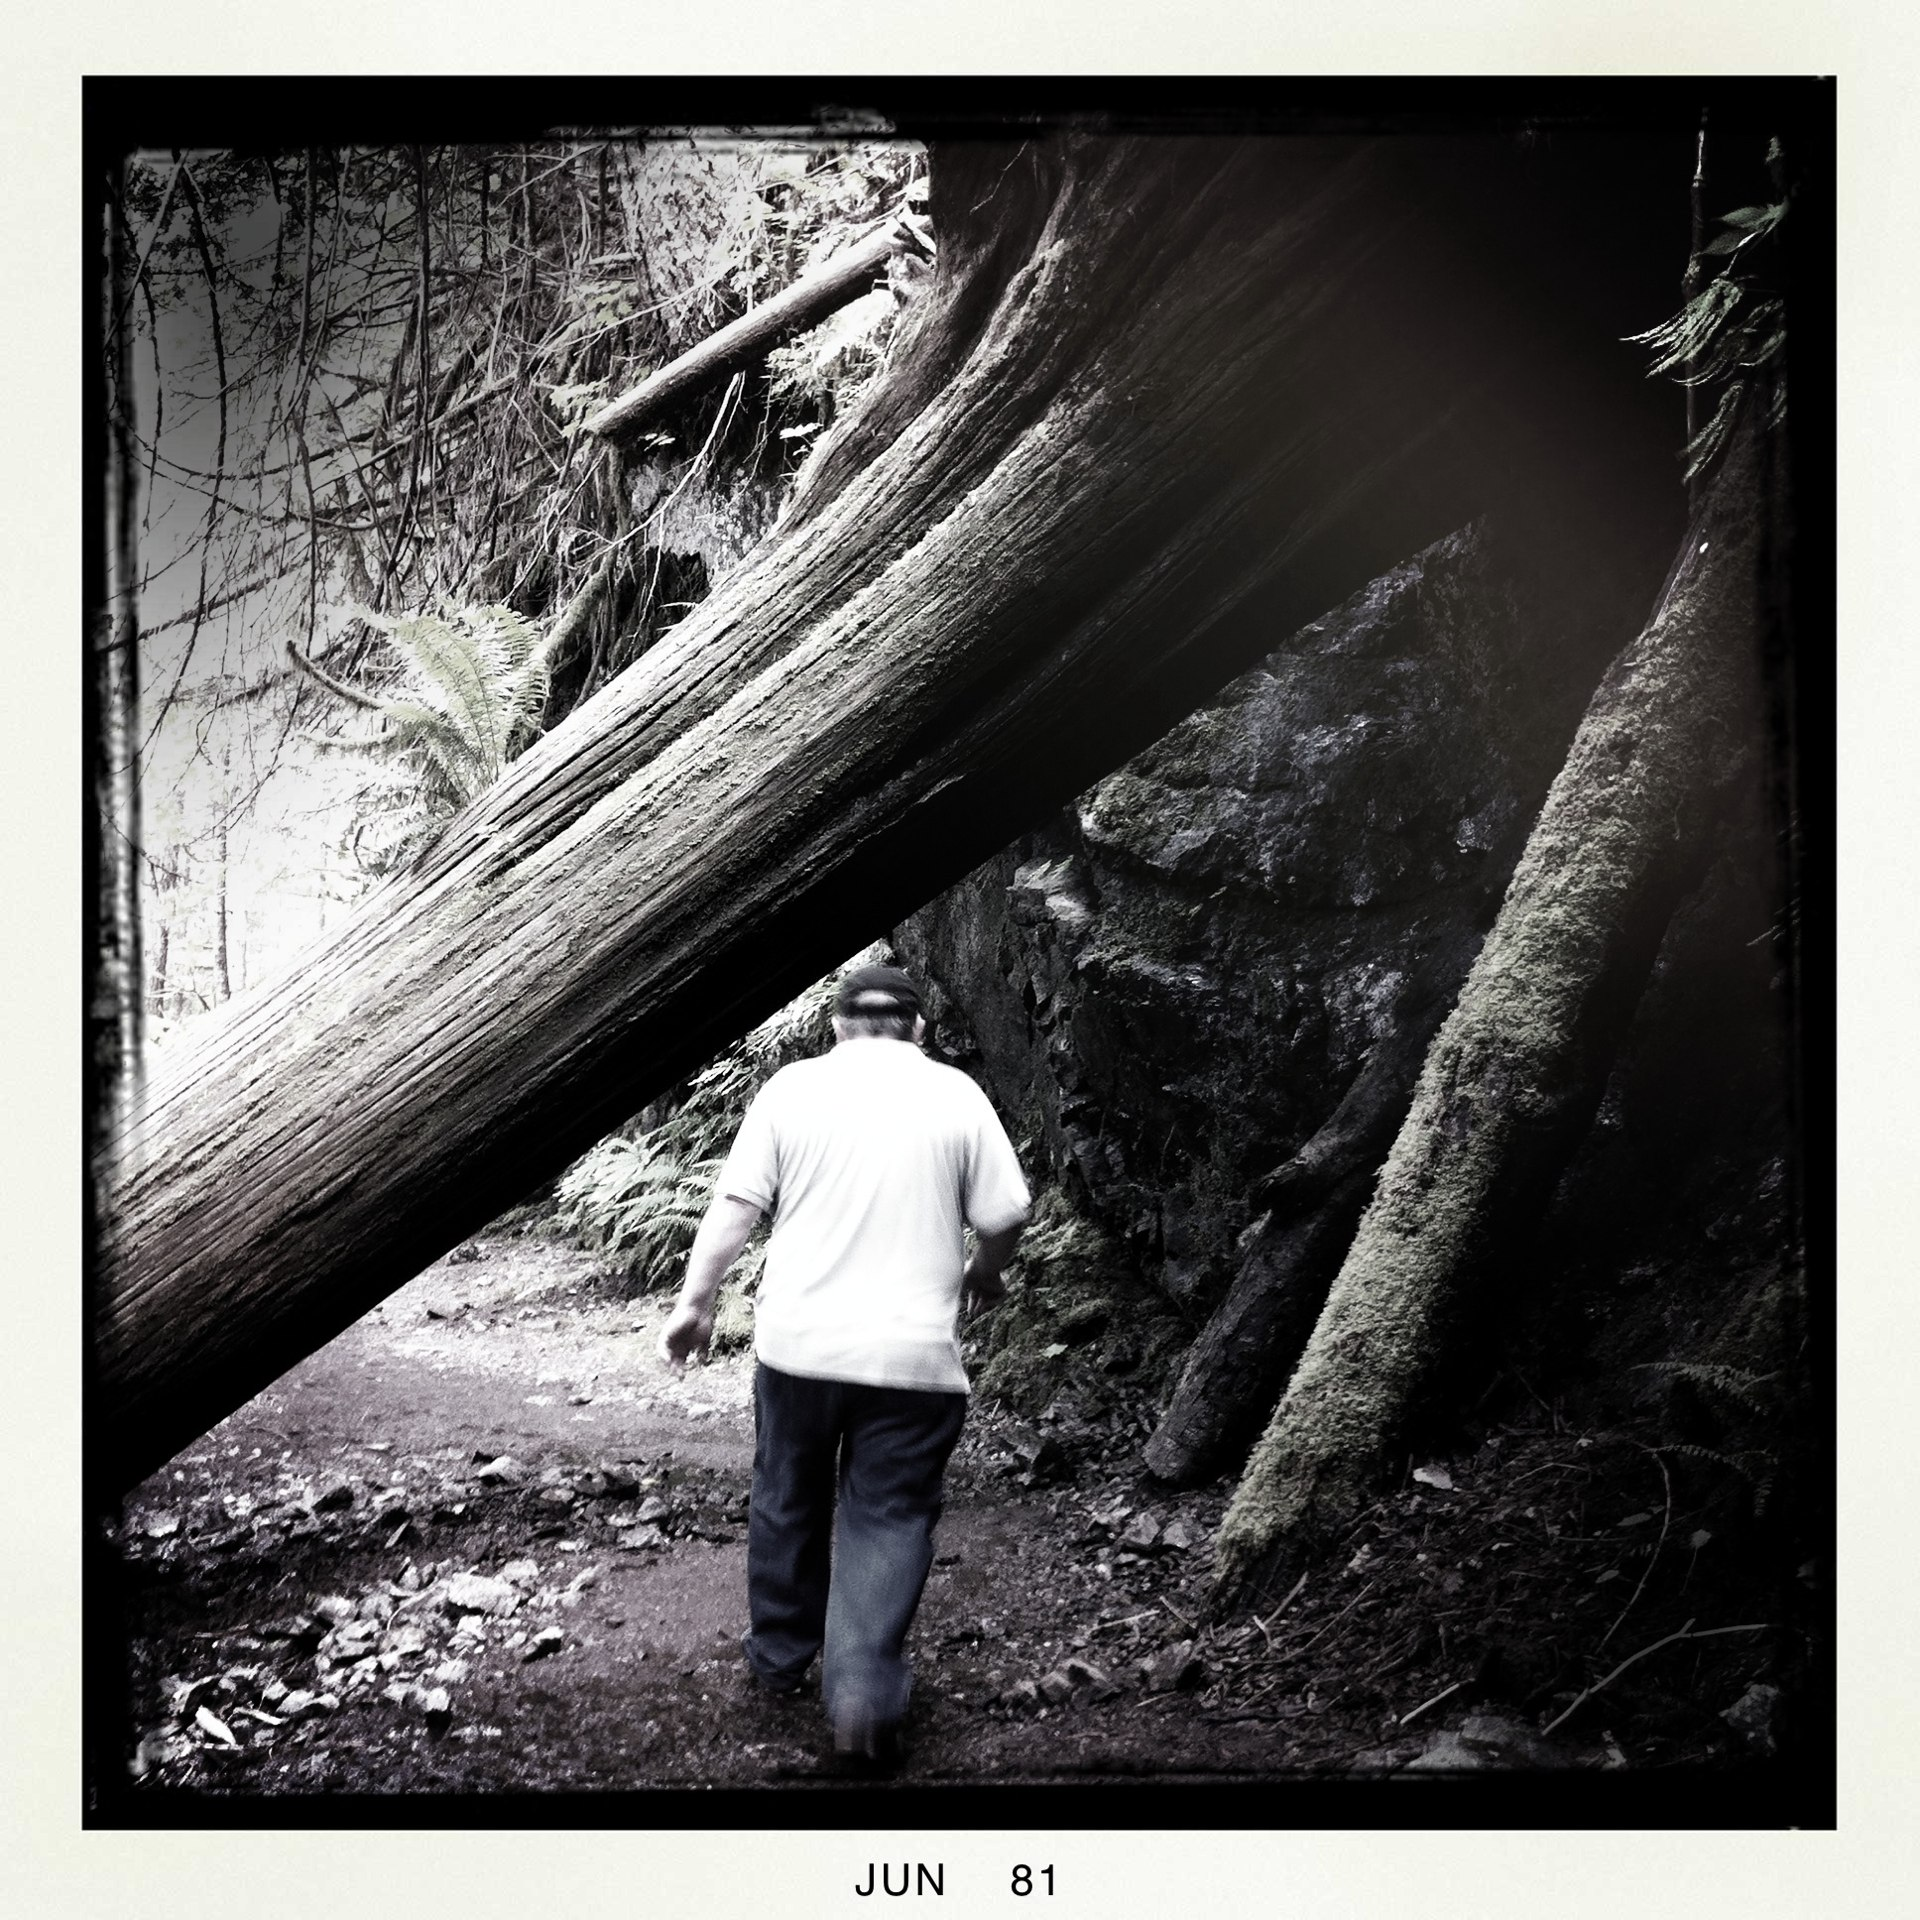 Loved this old tree stretched over the path, my dad looks so tiny compared to it.